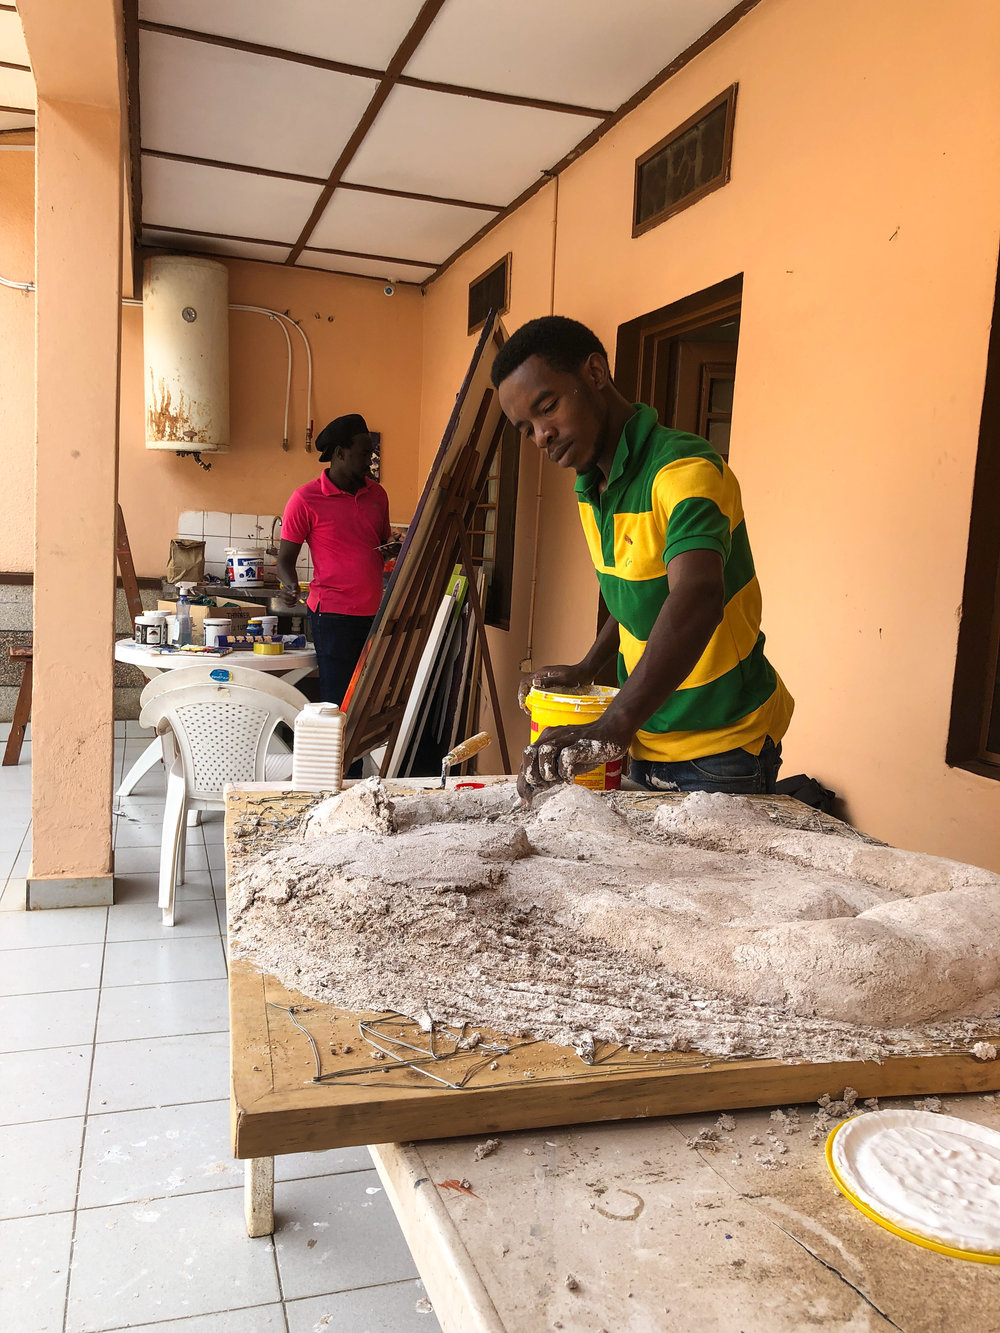 Remy lays down a mixture of plaster and sawdust to create a  sculpture